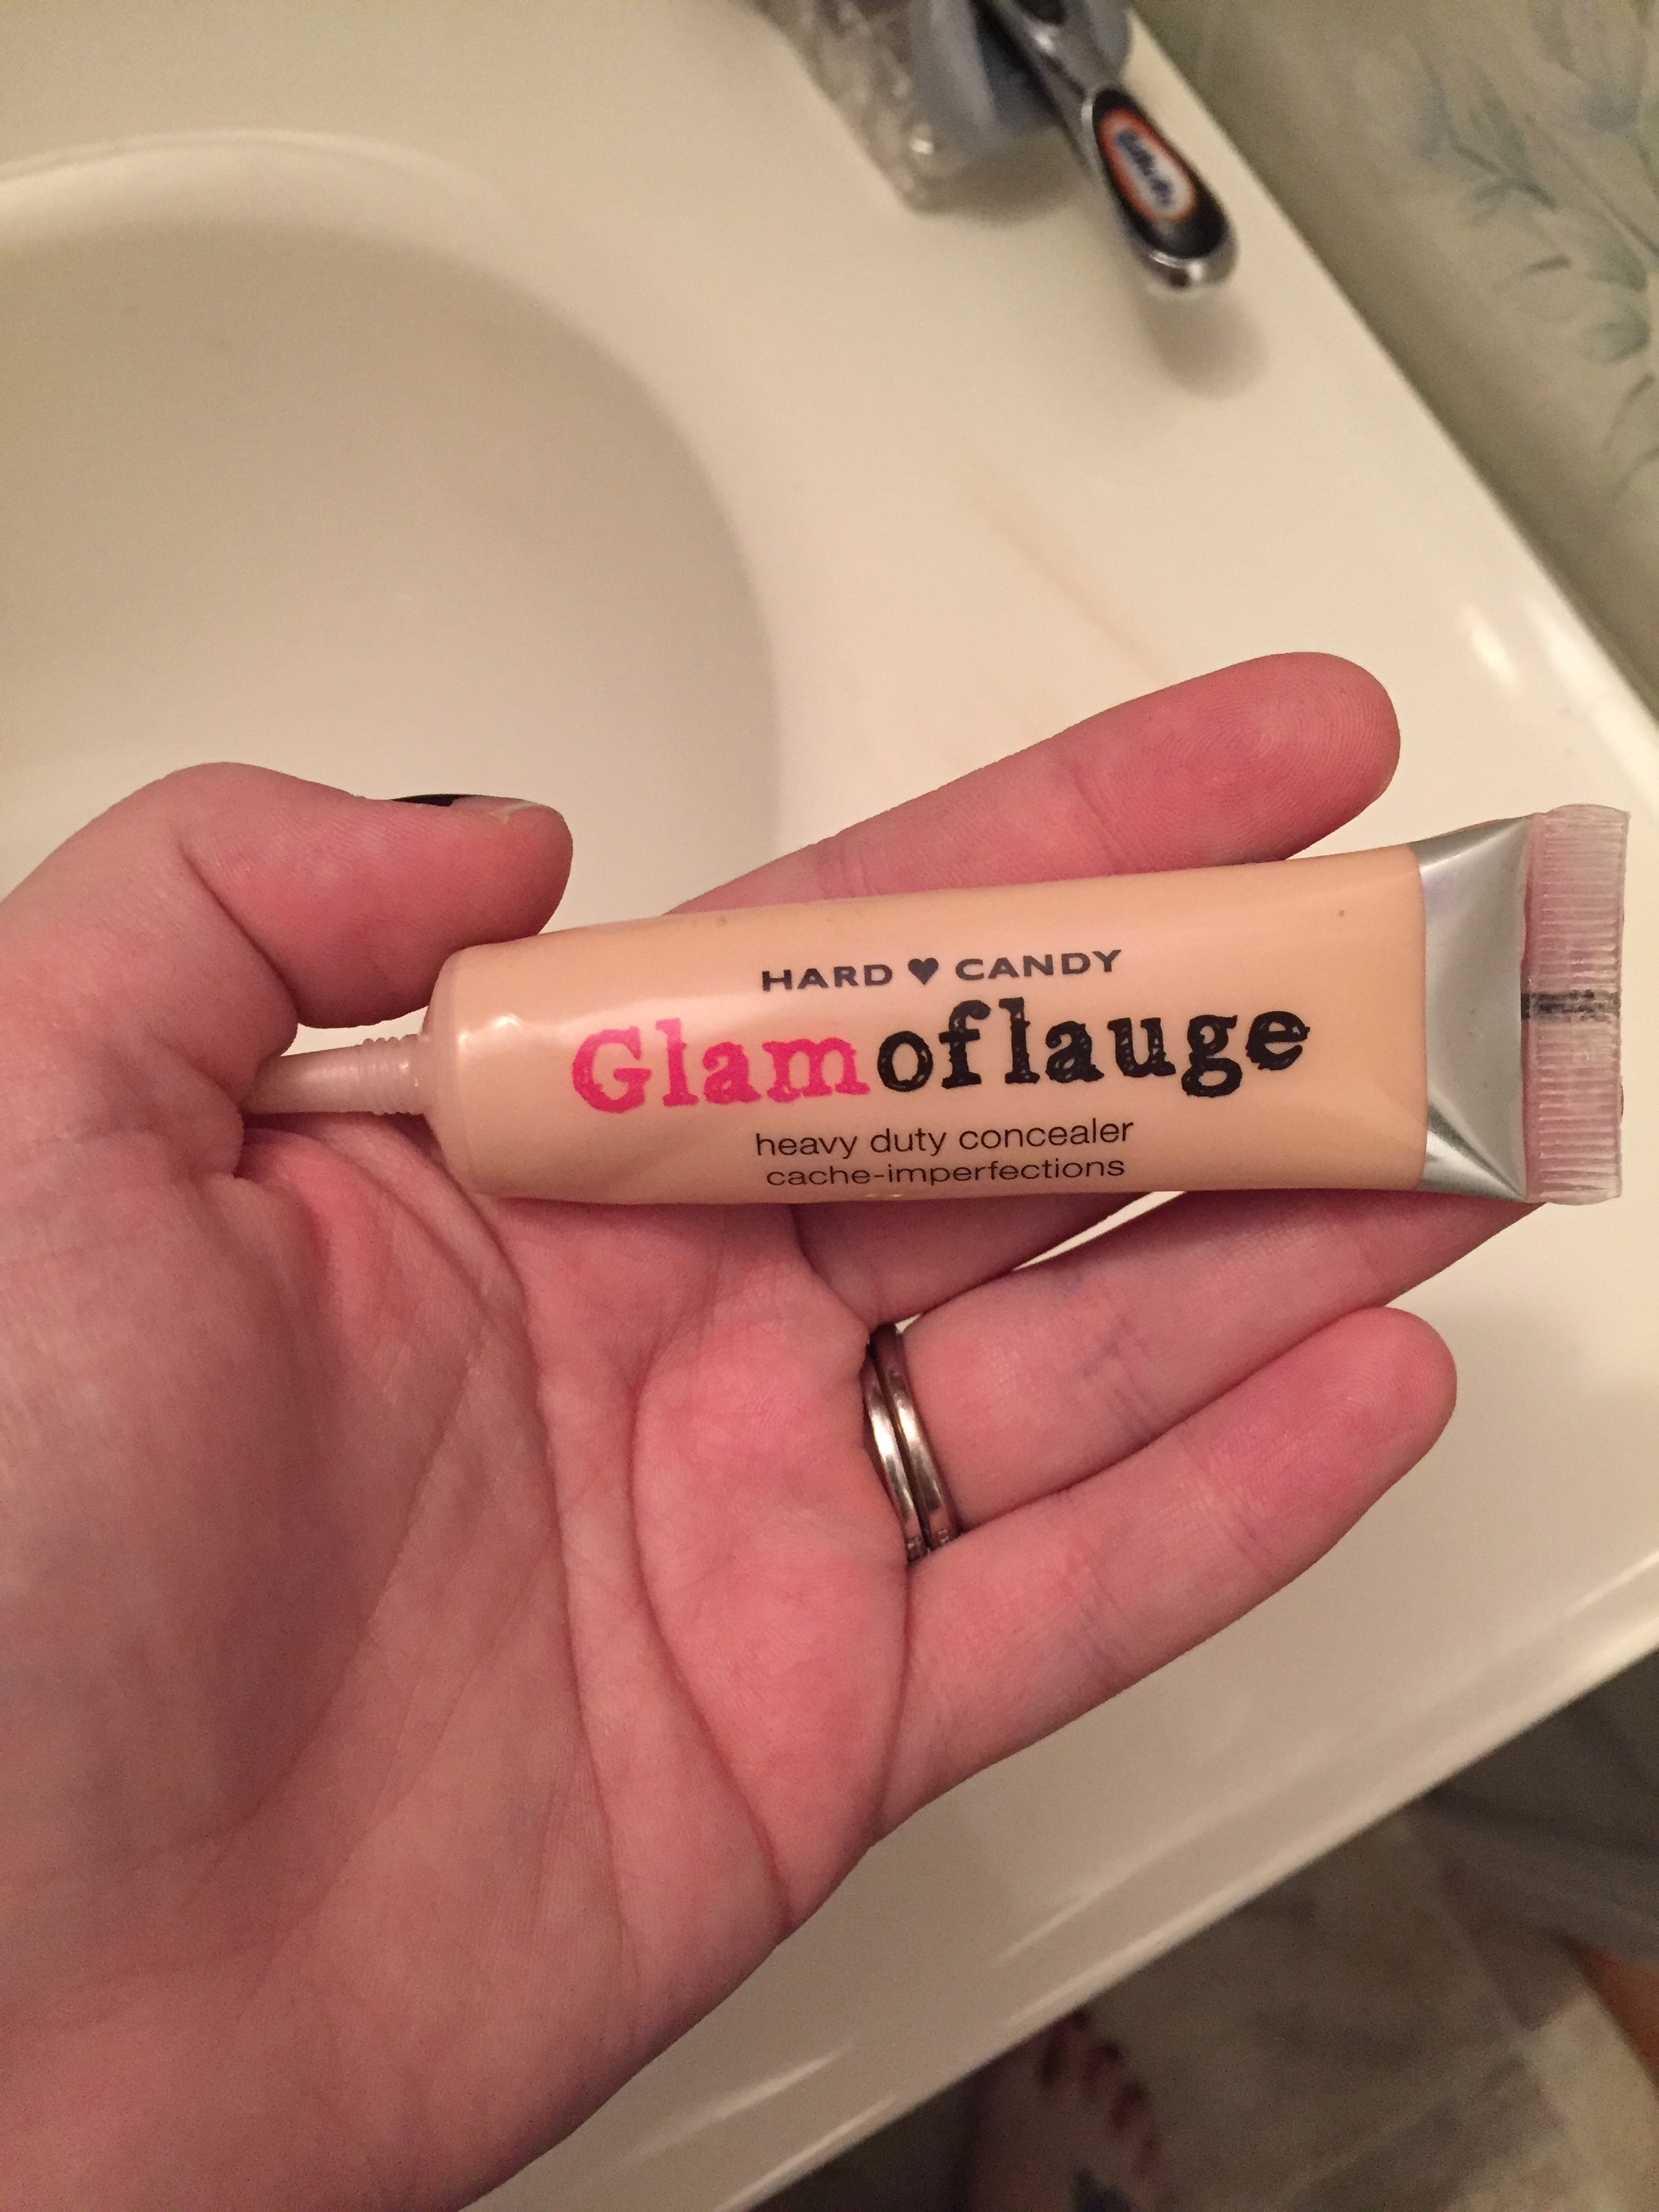 Hard Candy Glamoflauge Heavy Duty Concealer reviews in Concealer ...